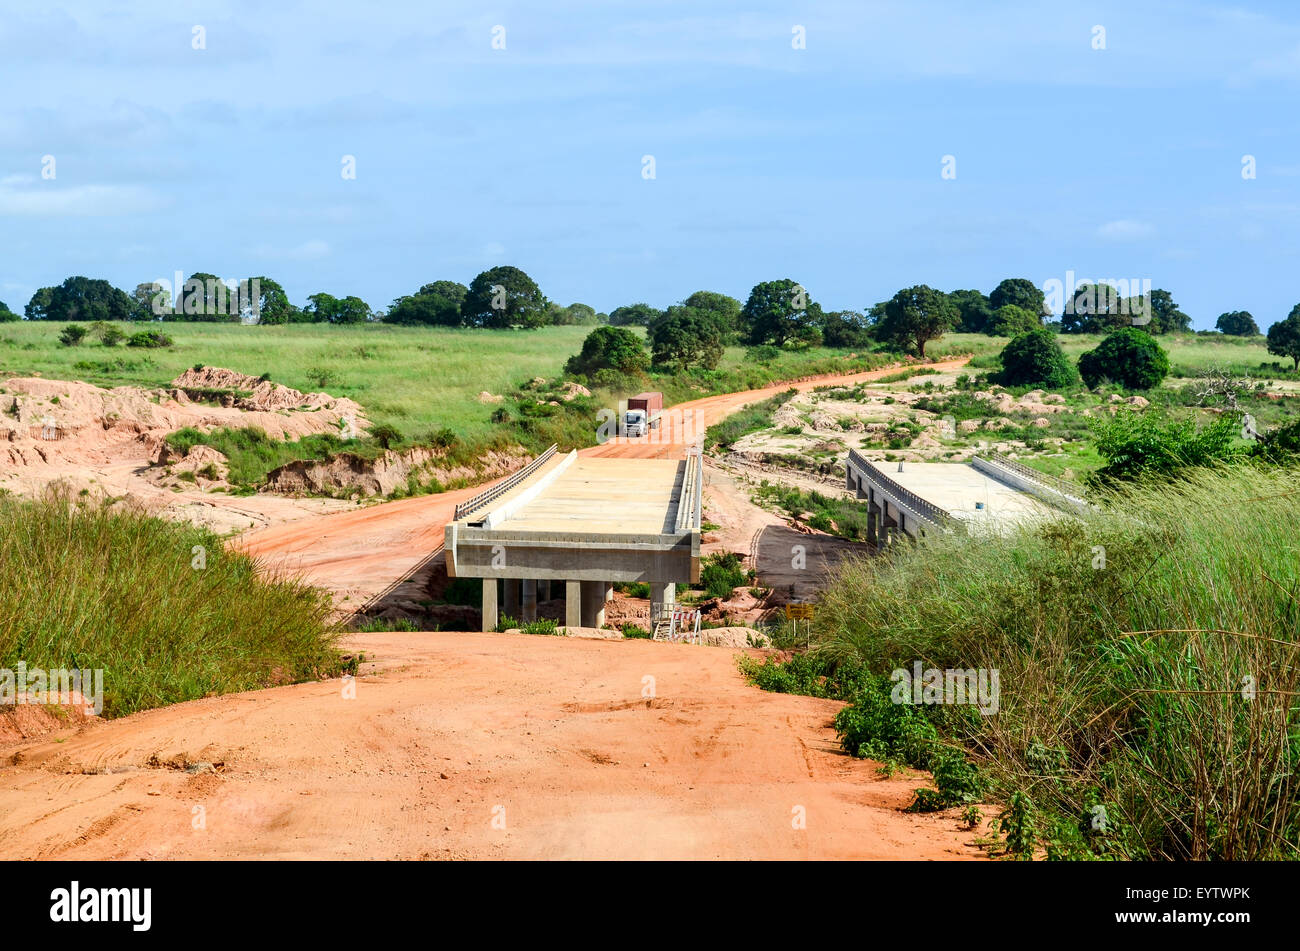 Construction of a bridge on the Soyo - Luanda highway in Angola - Stock Image